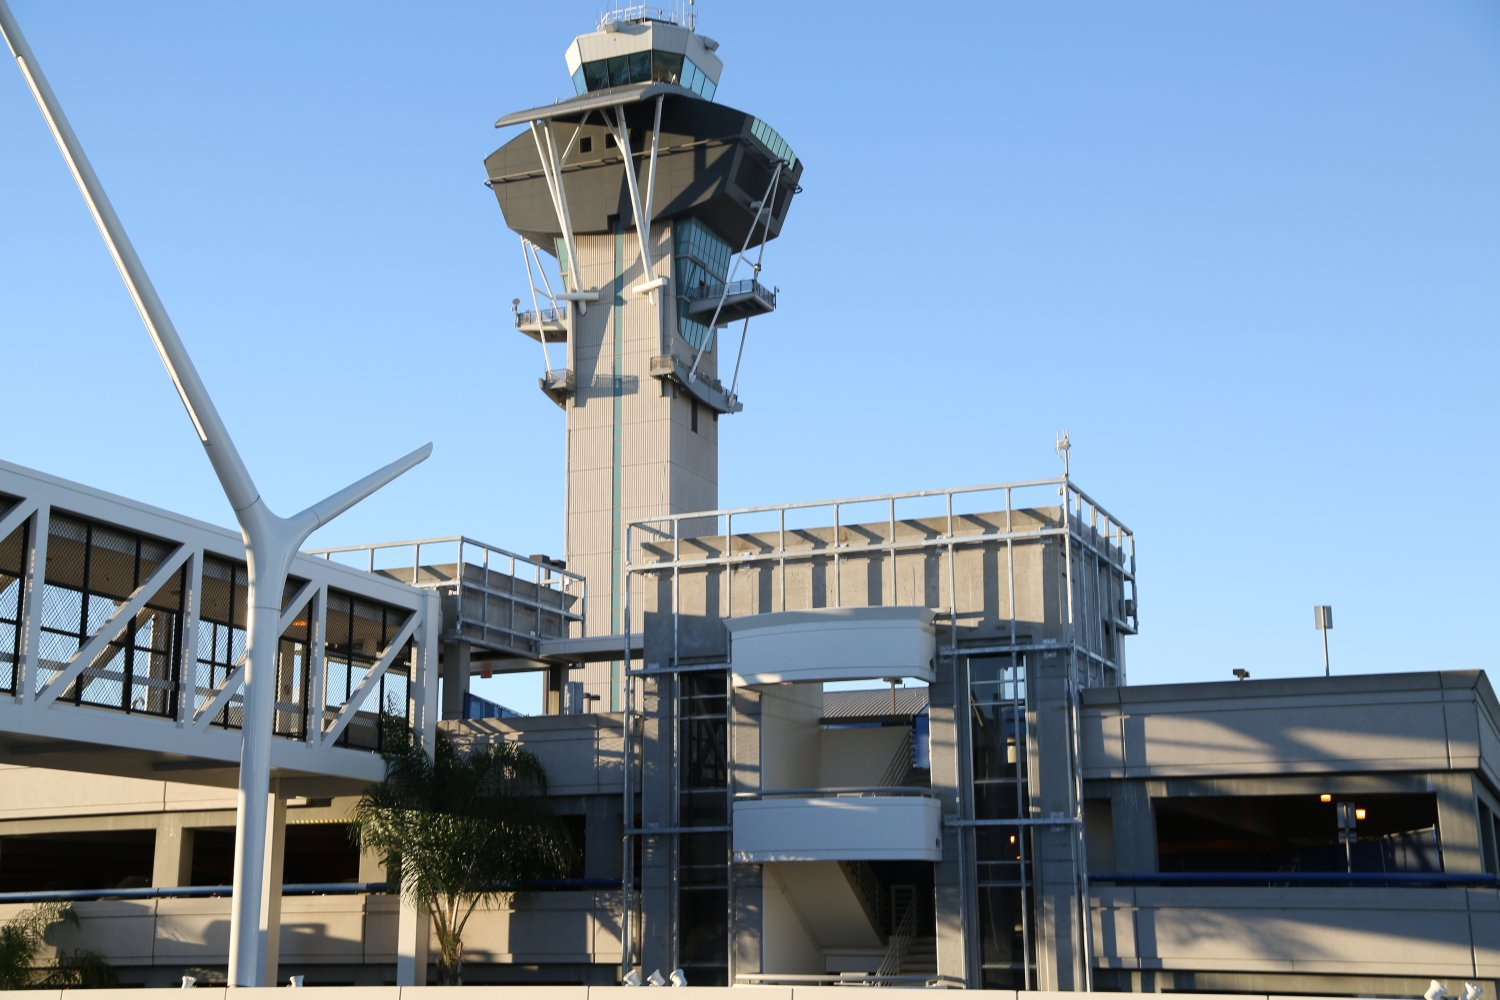 Los Angeles  CA   AirportsLos Angeles Airports. Restaurants Near Lax Airport. Home Design Ideas